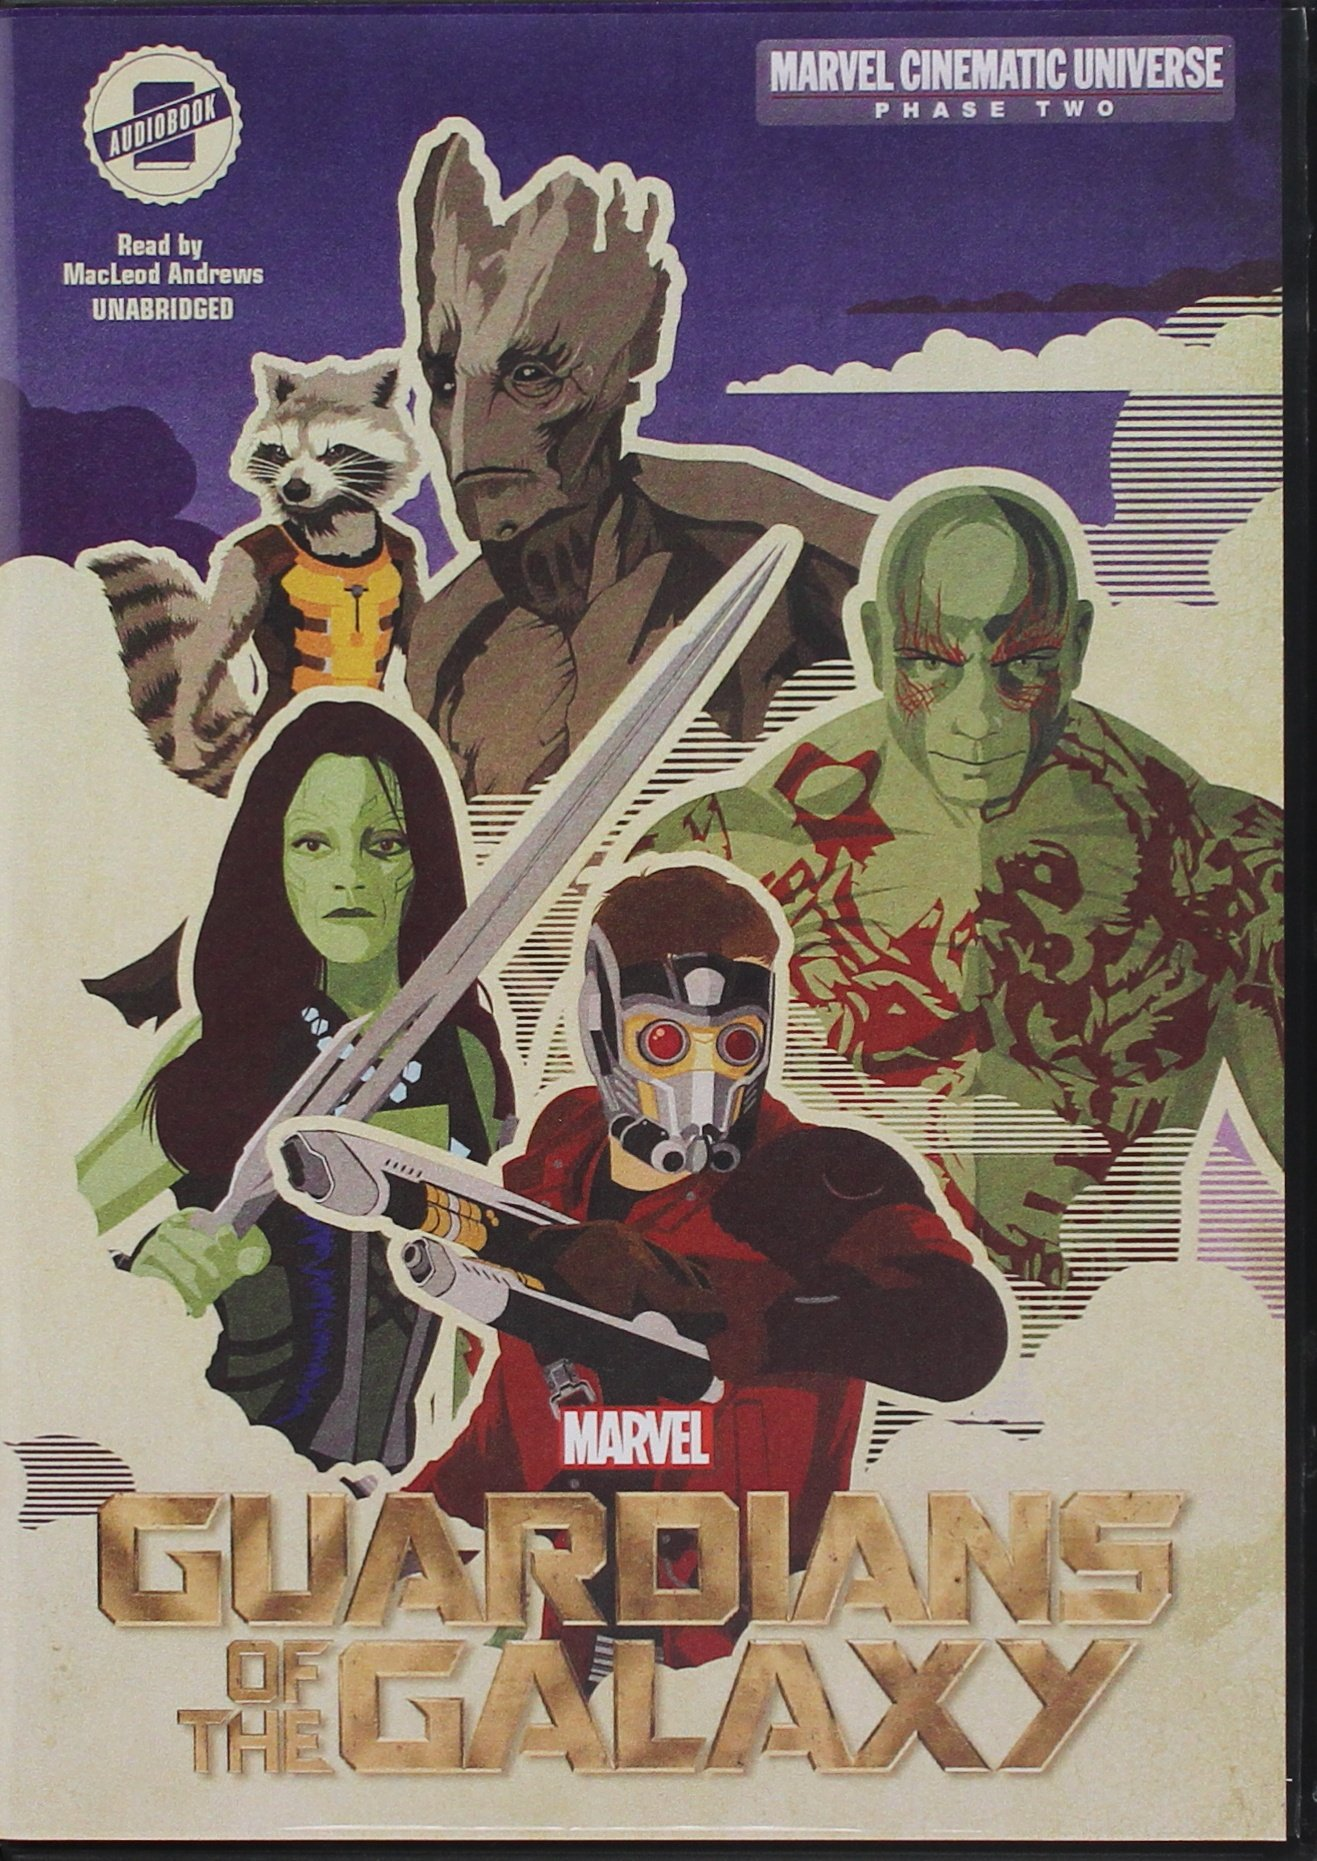 Phase Two: Marvel's Guardians of the Galaxy (Marvel Cinematic Universe: Phase Two)